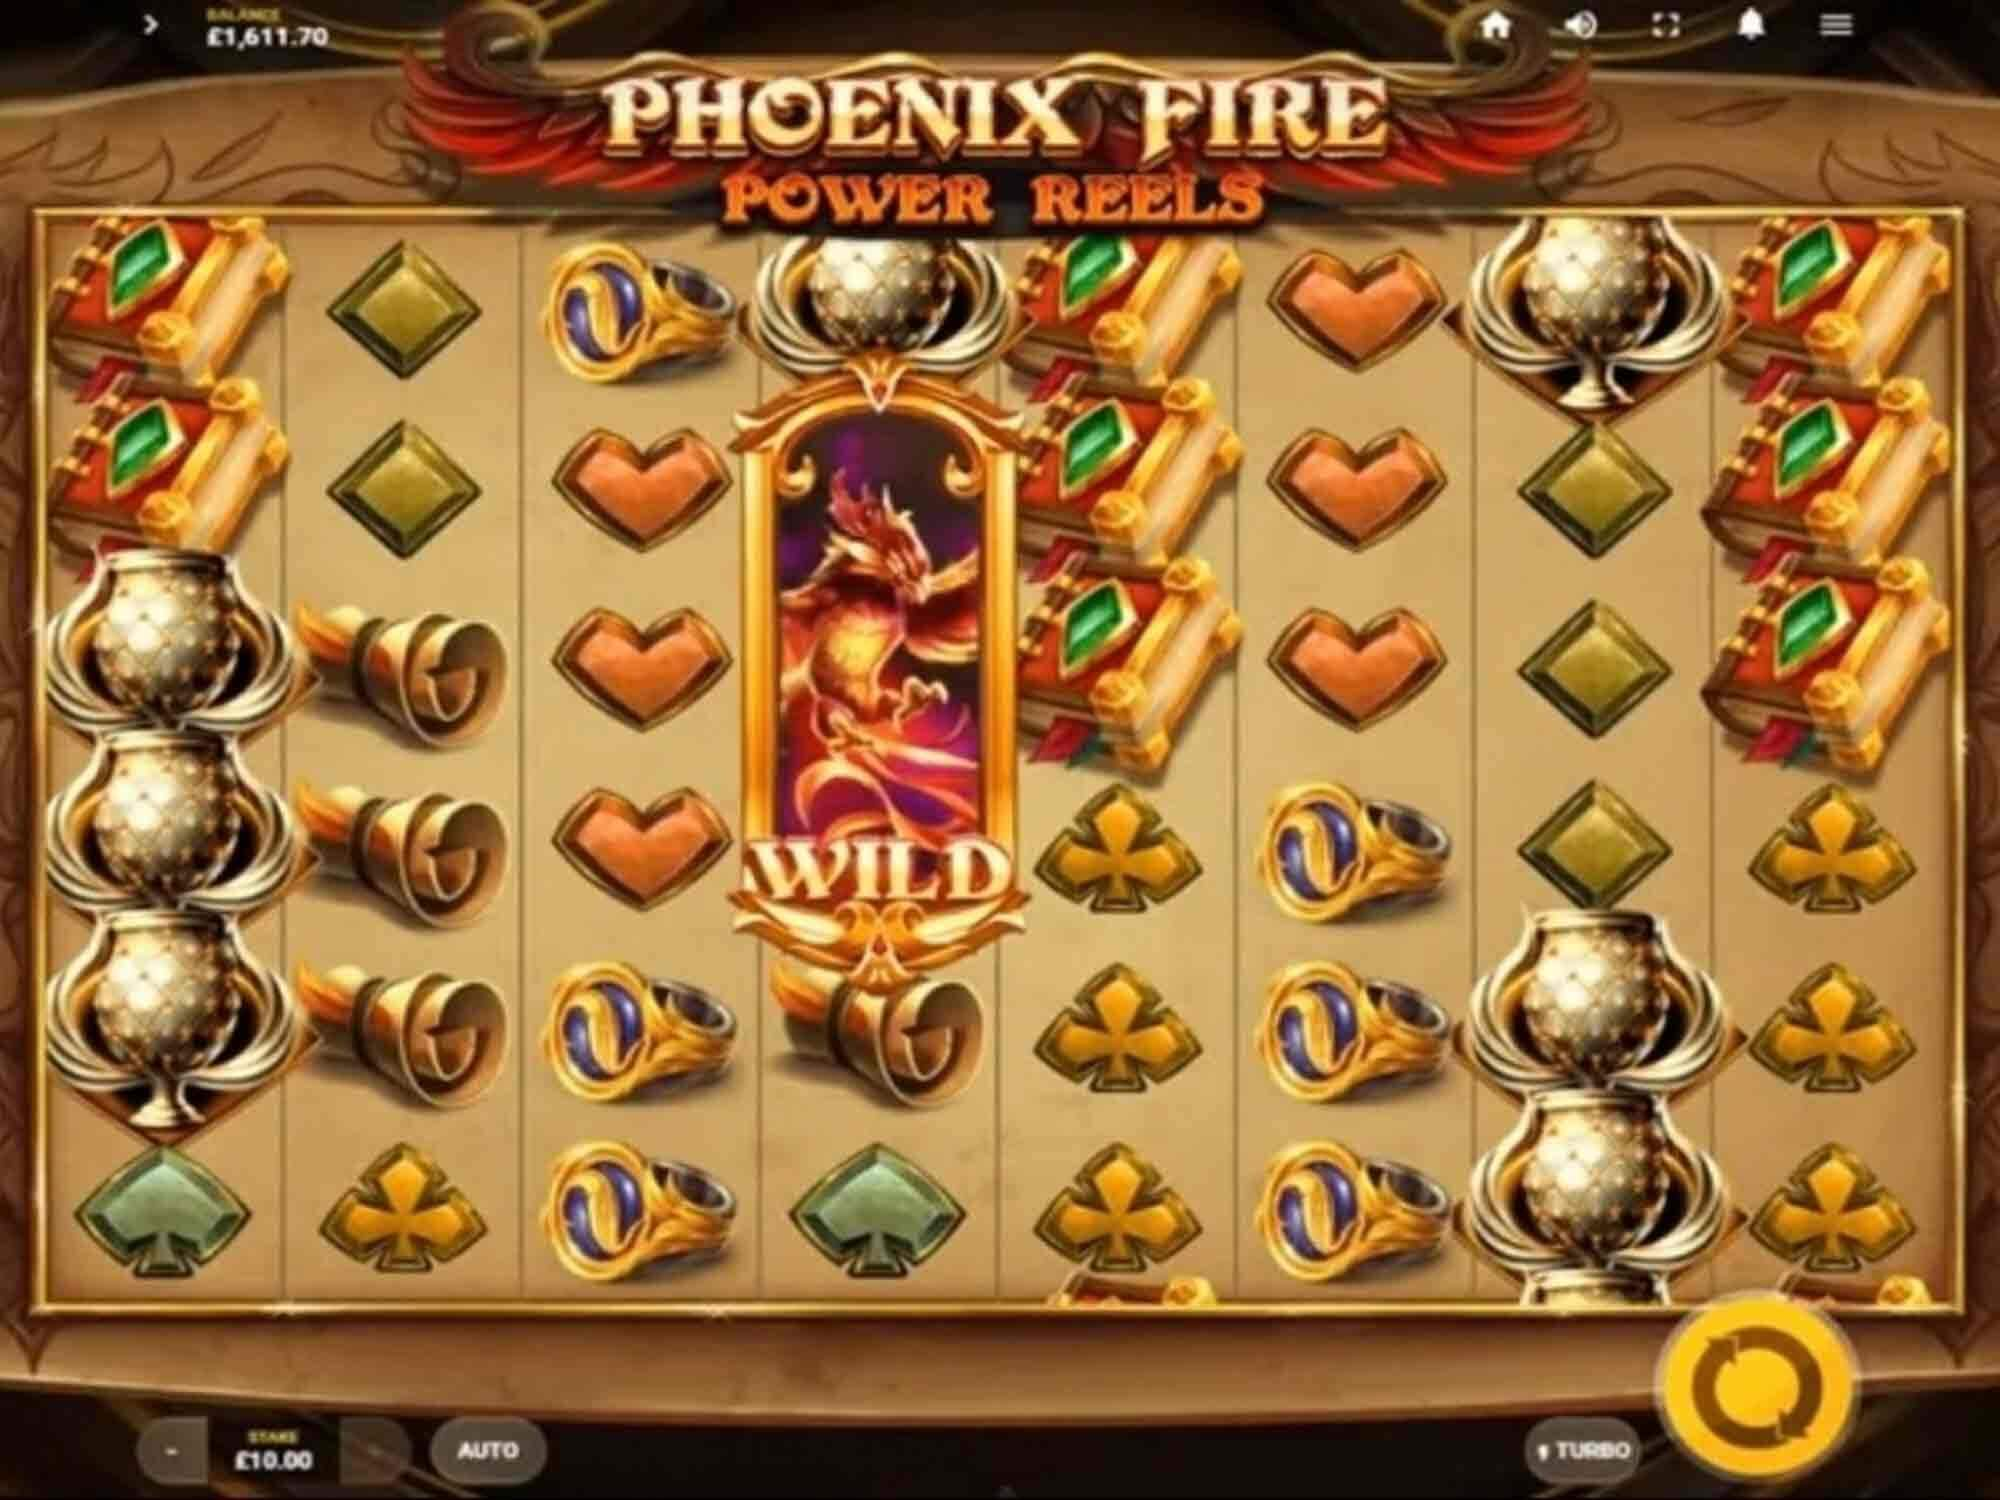 Phoenix Fire Power Reels Slot Gameplay